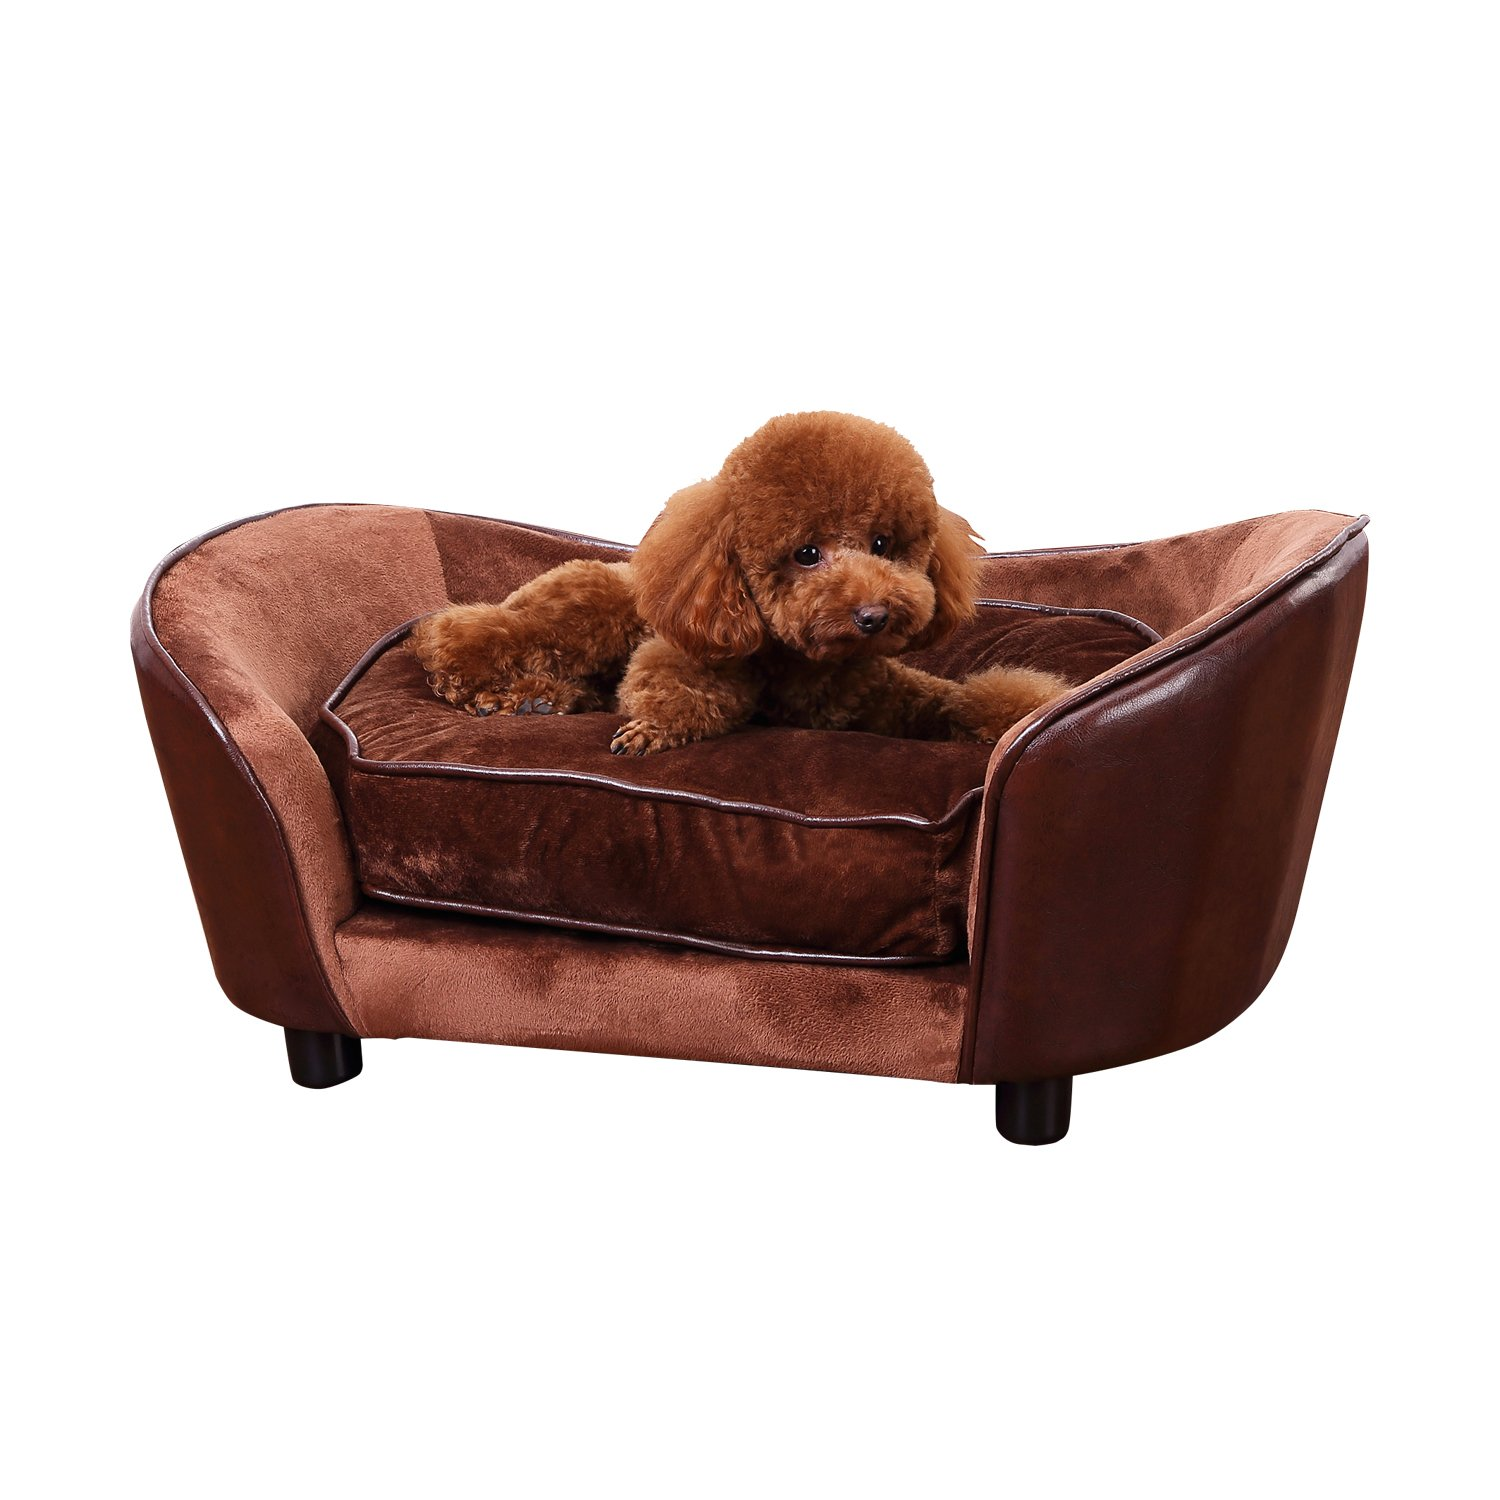 Sofas and Chairs for Dogs